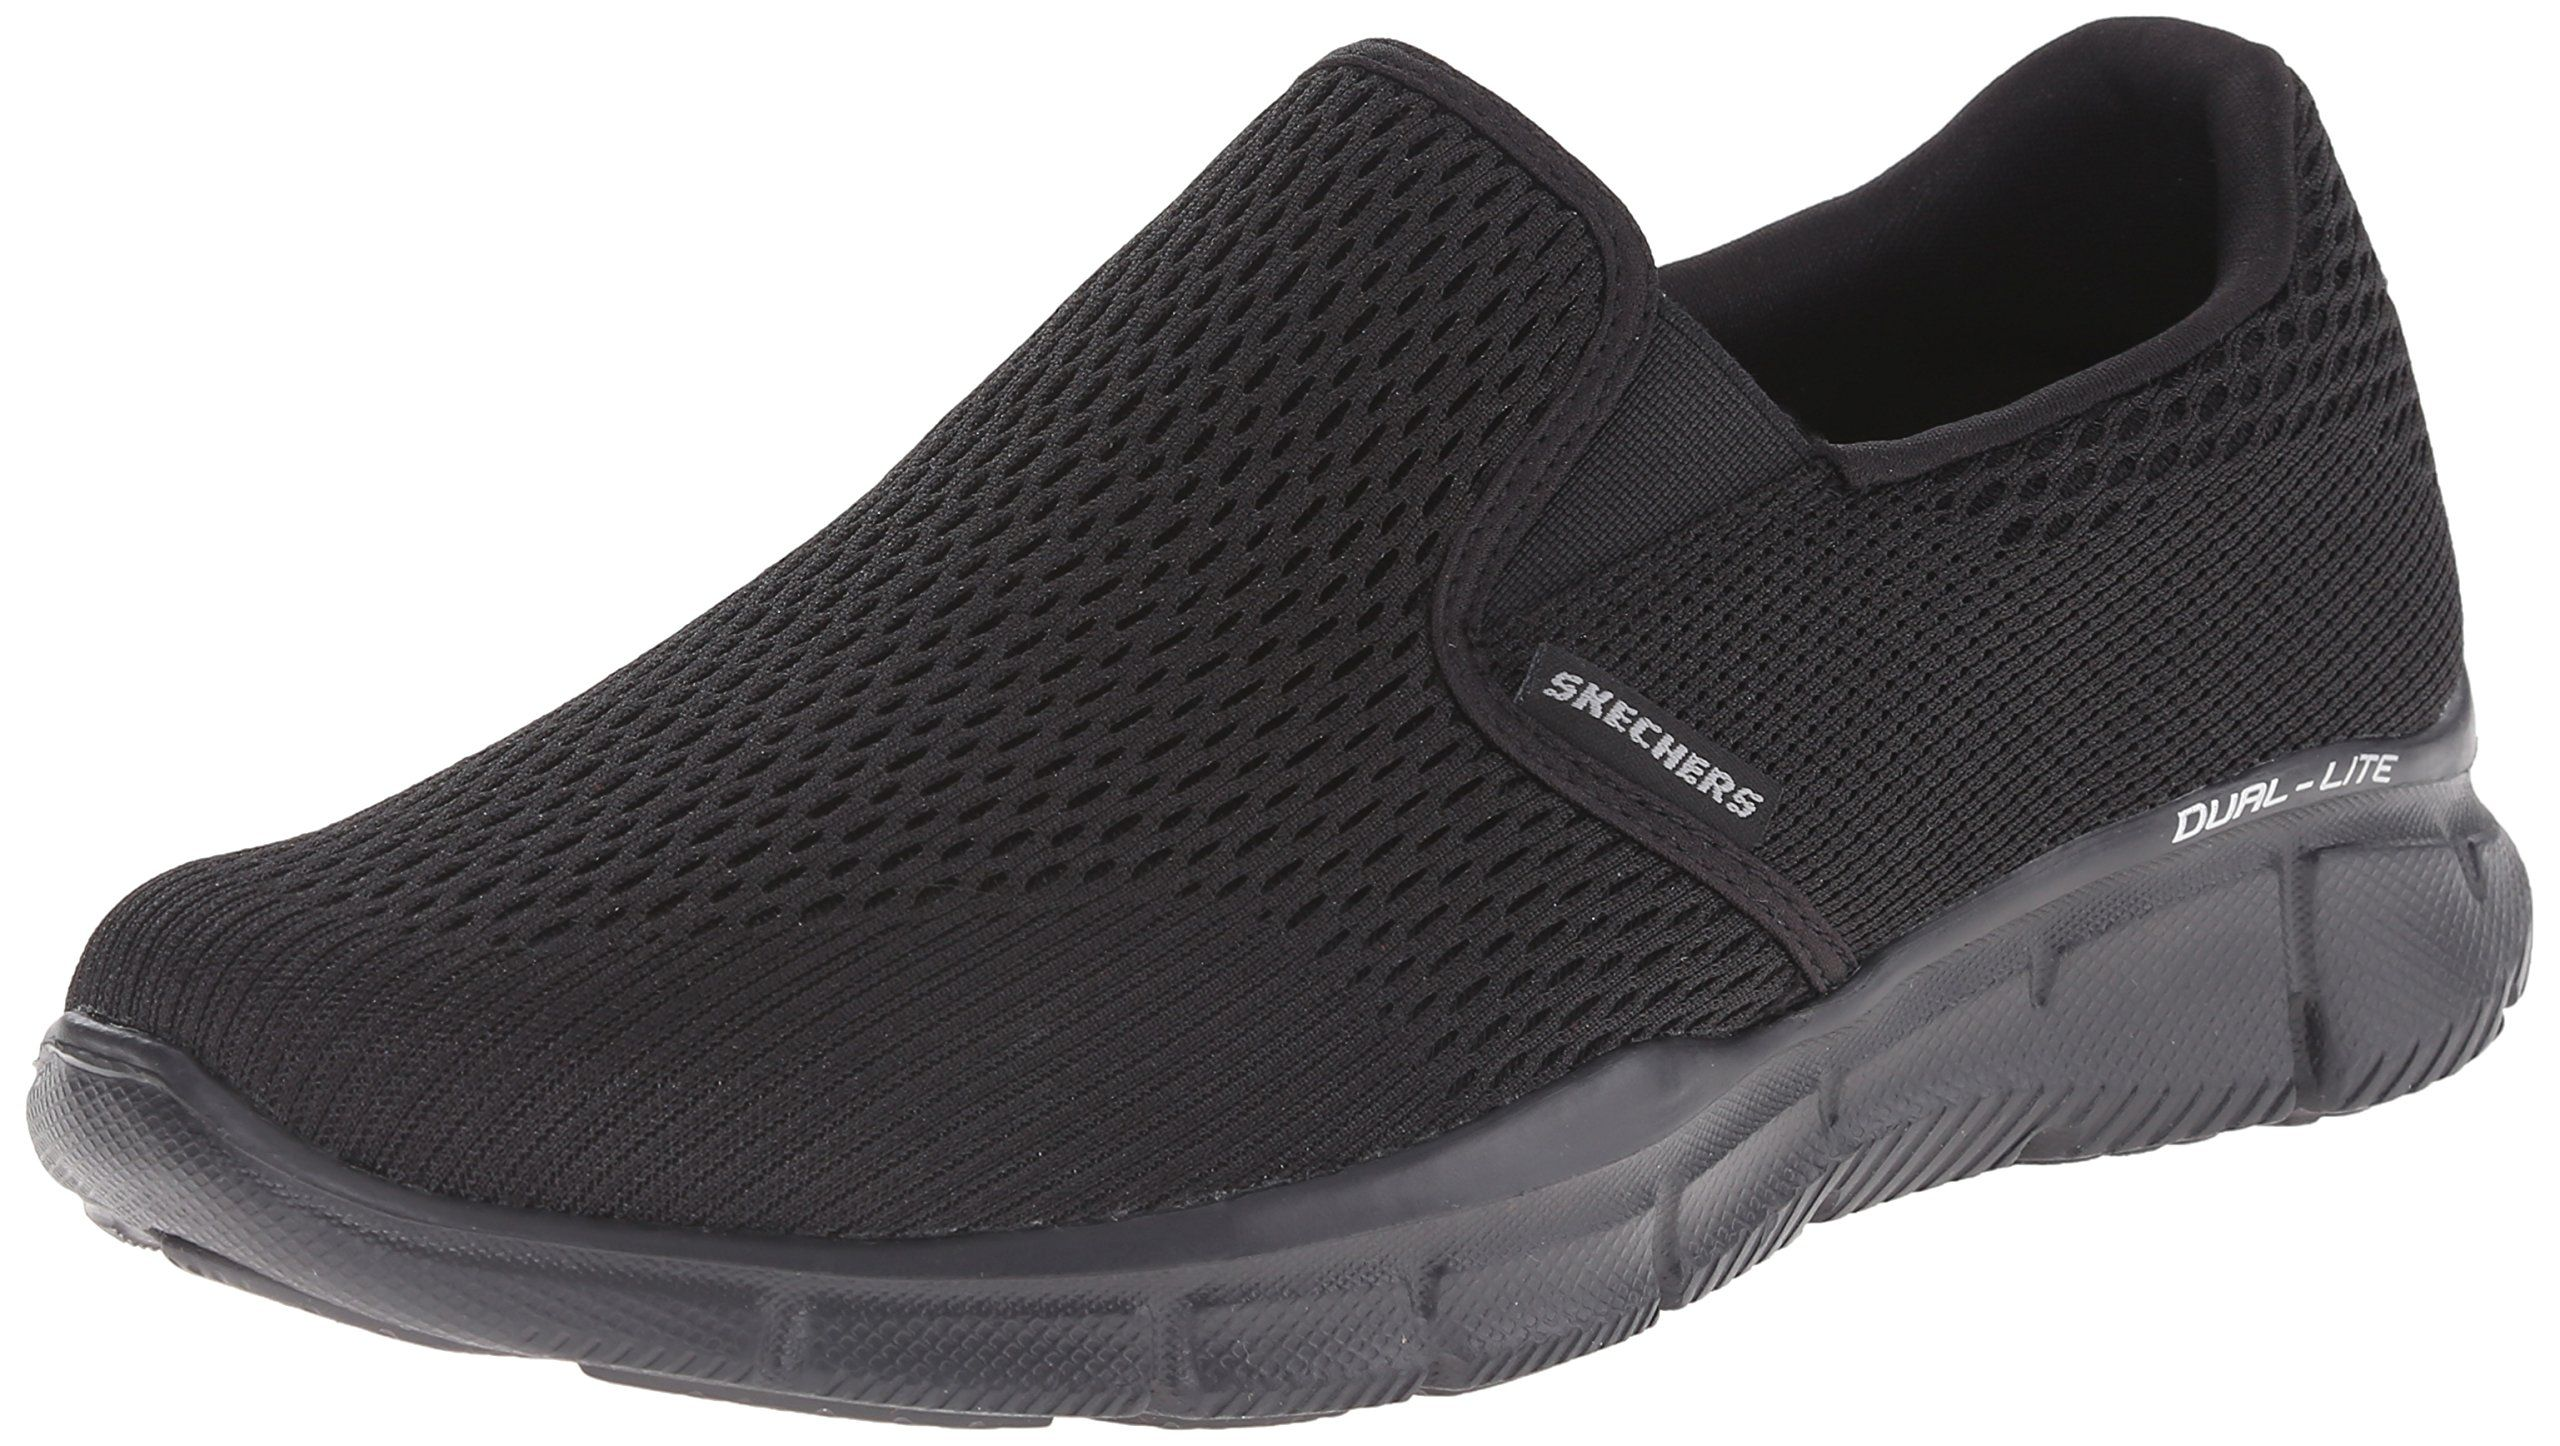 Skechers Mens Equalizer Double Play Slip On Loafer Skechers Slip